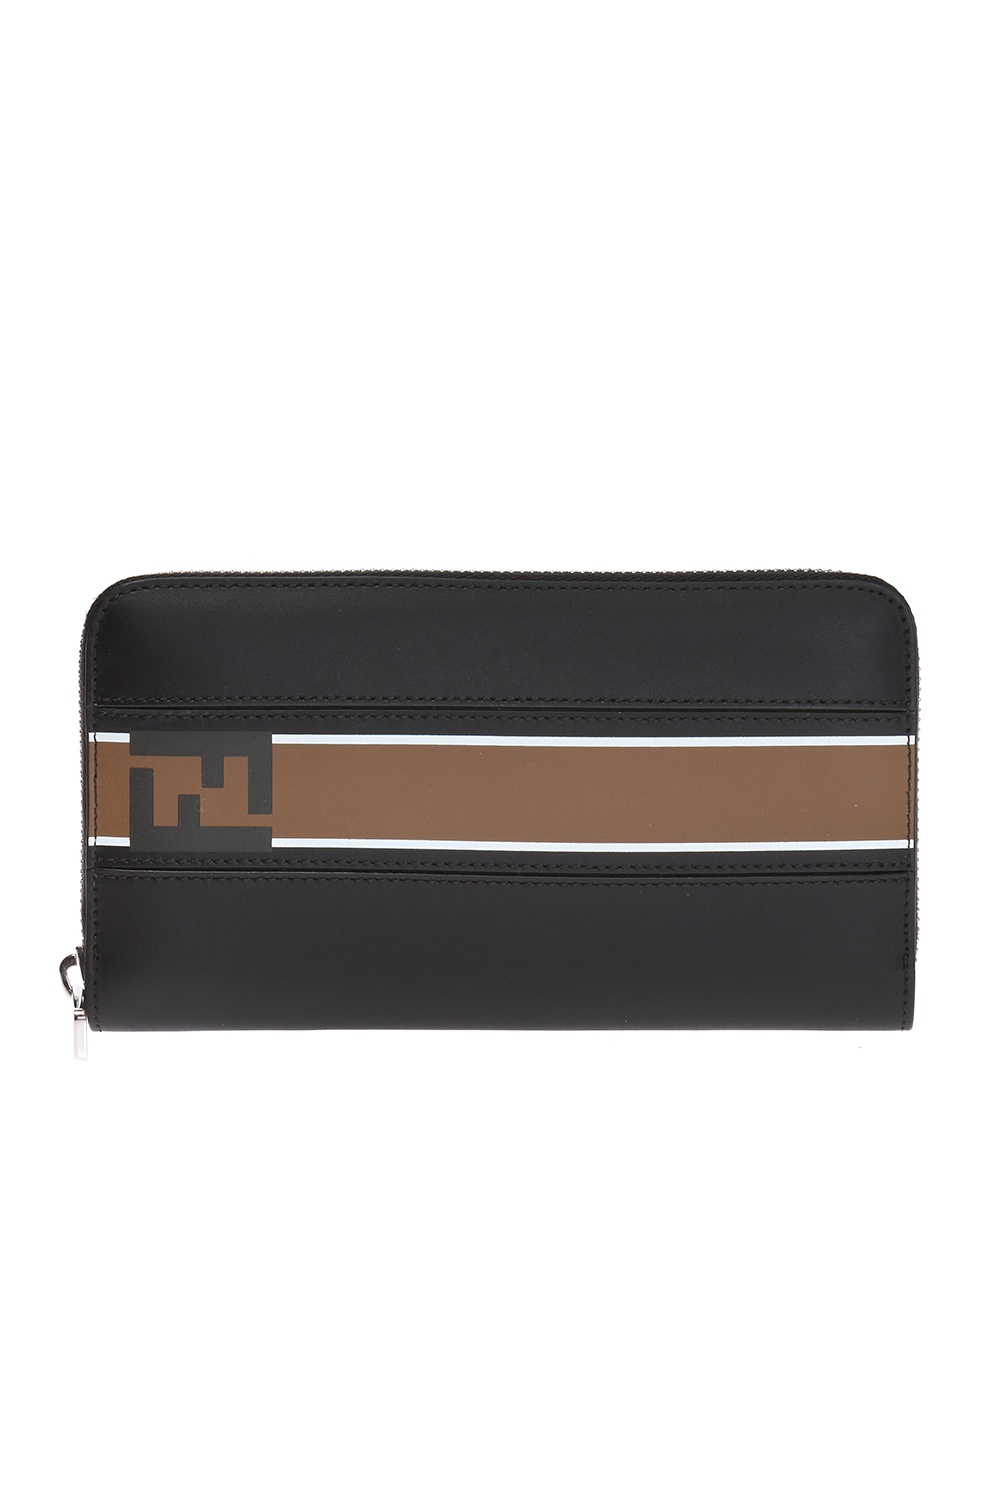 Fendi Wallet with logo